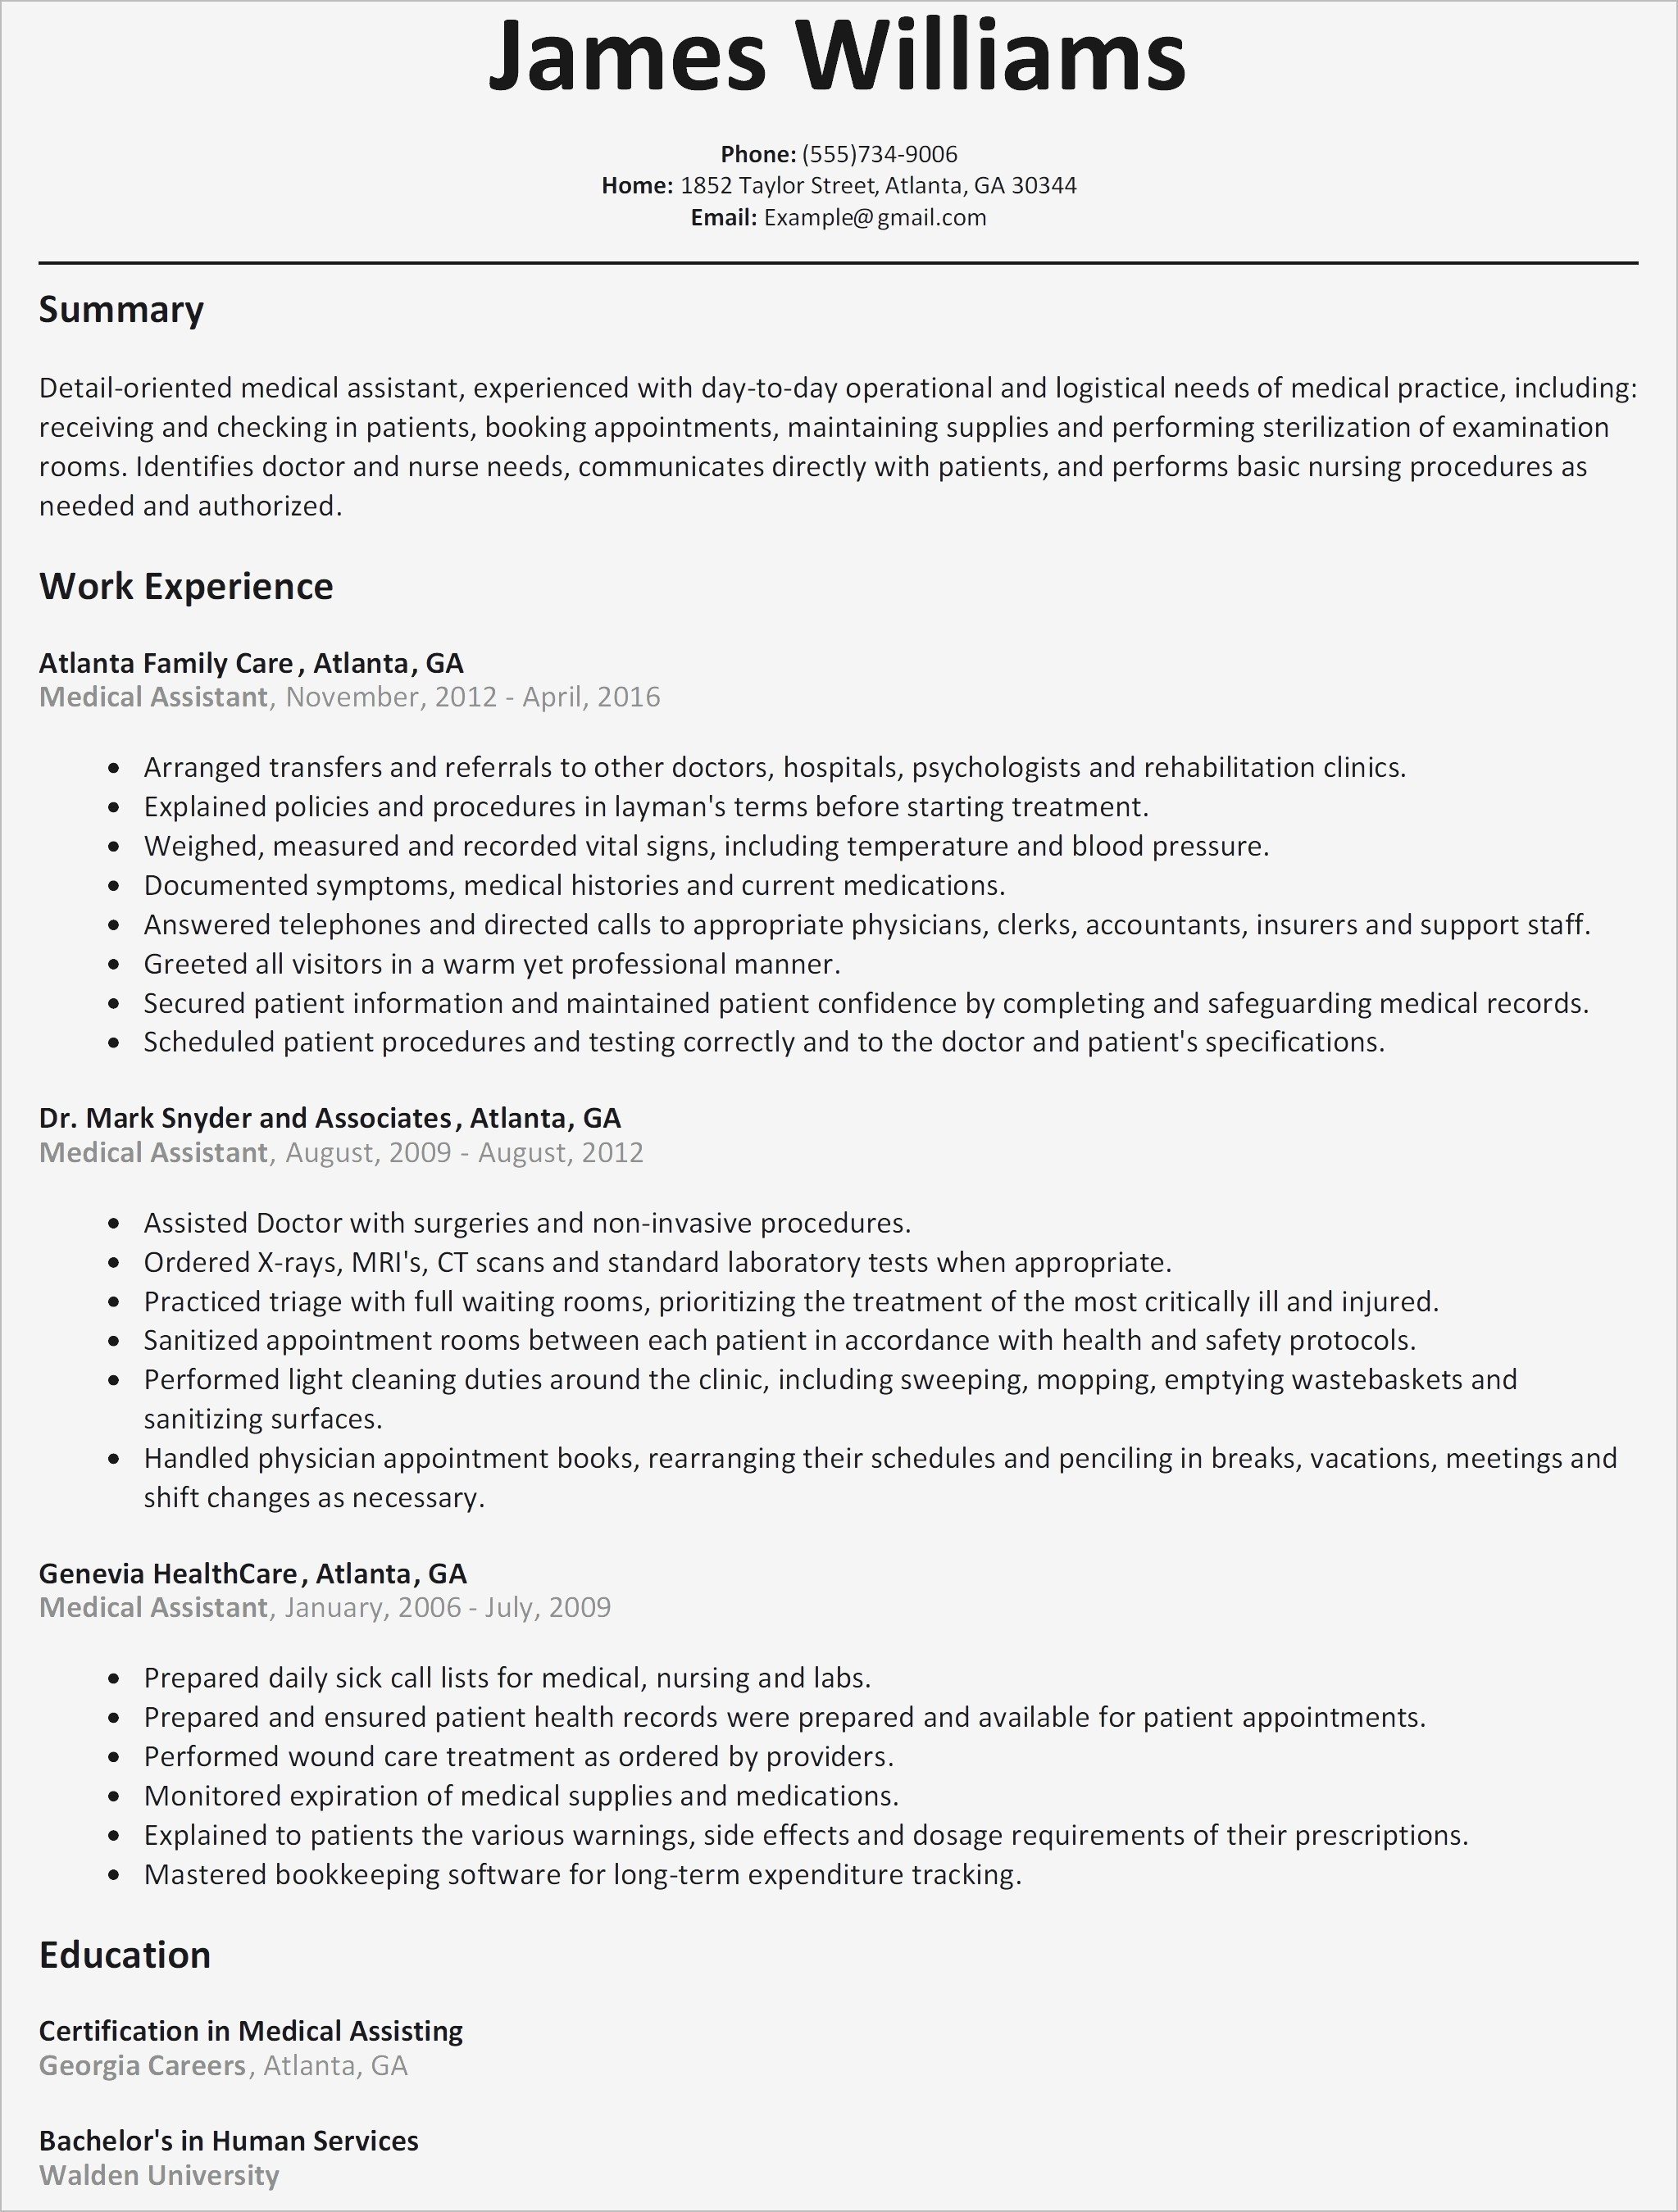 General Labor Resume Template - Fresh Resume for Construction Worker